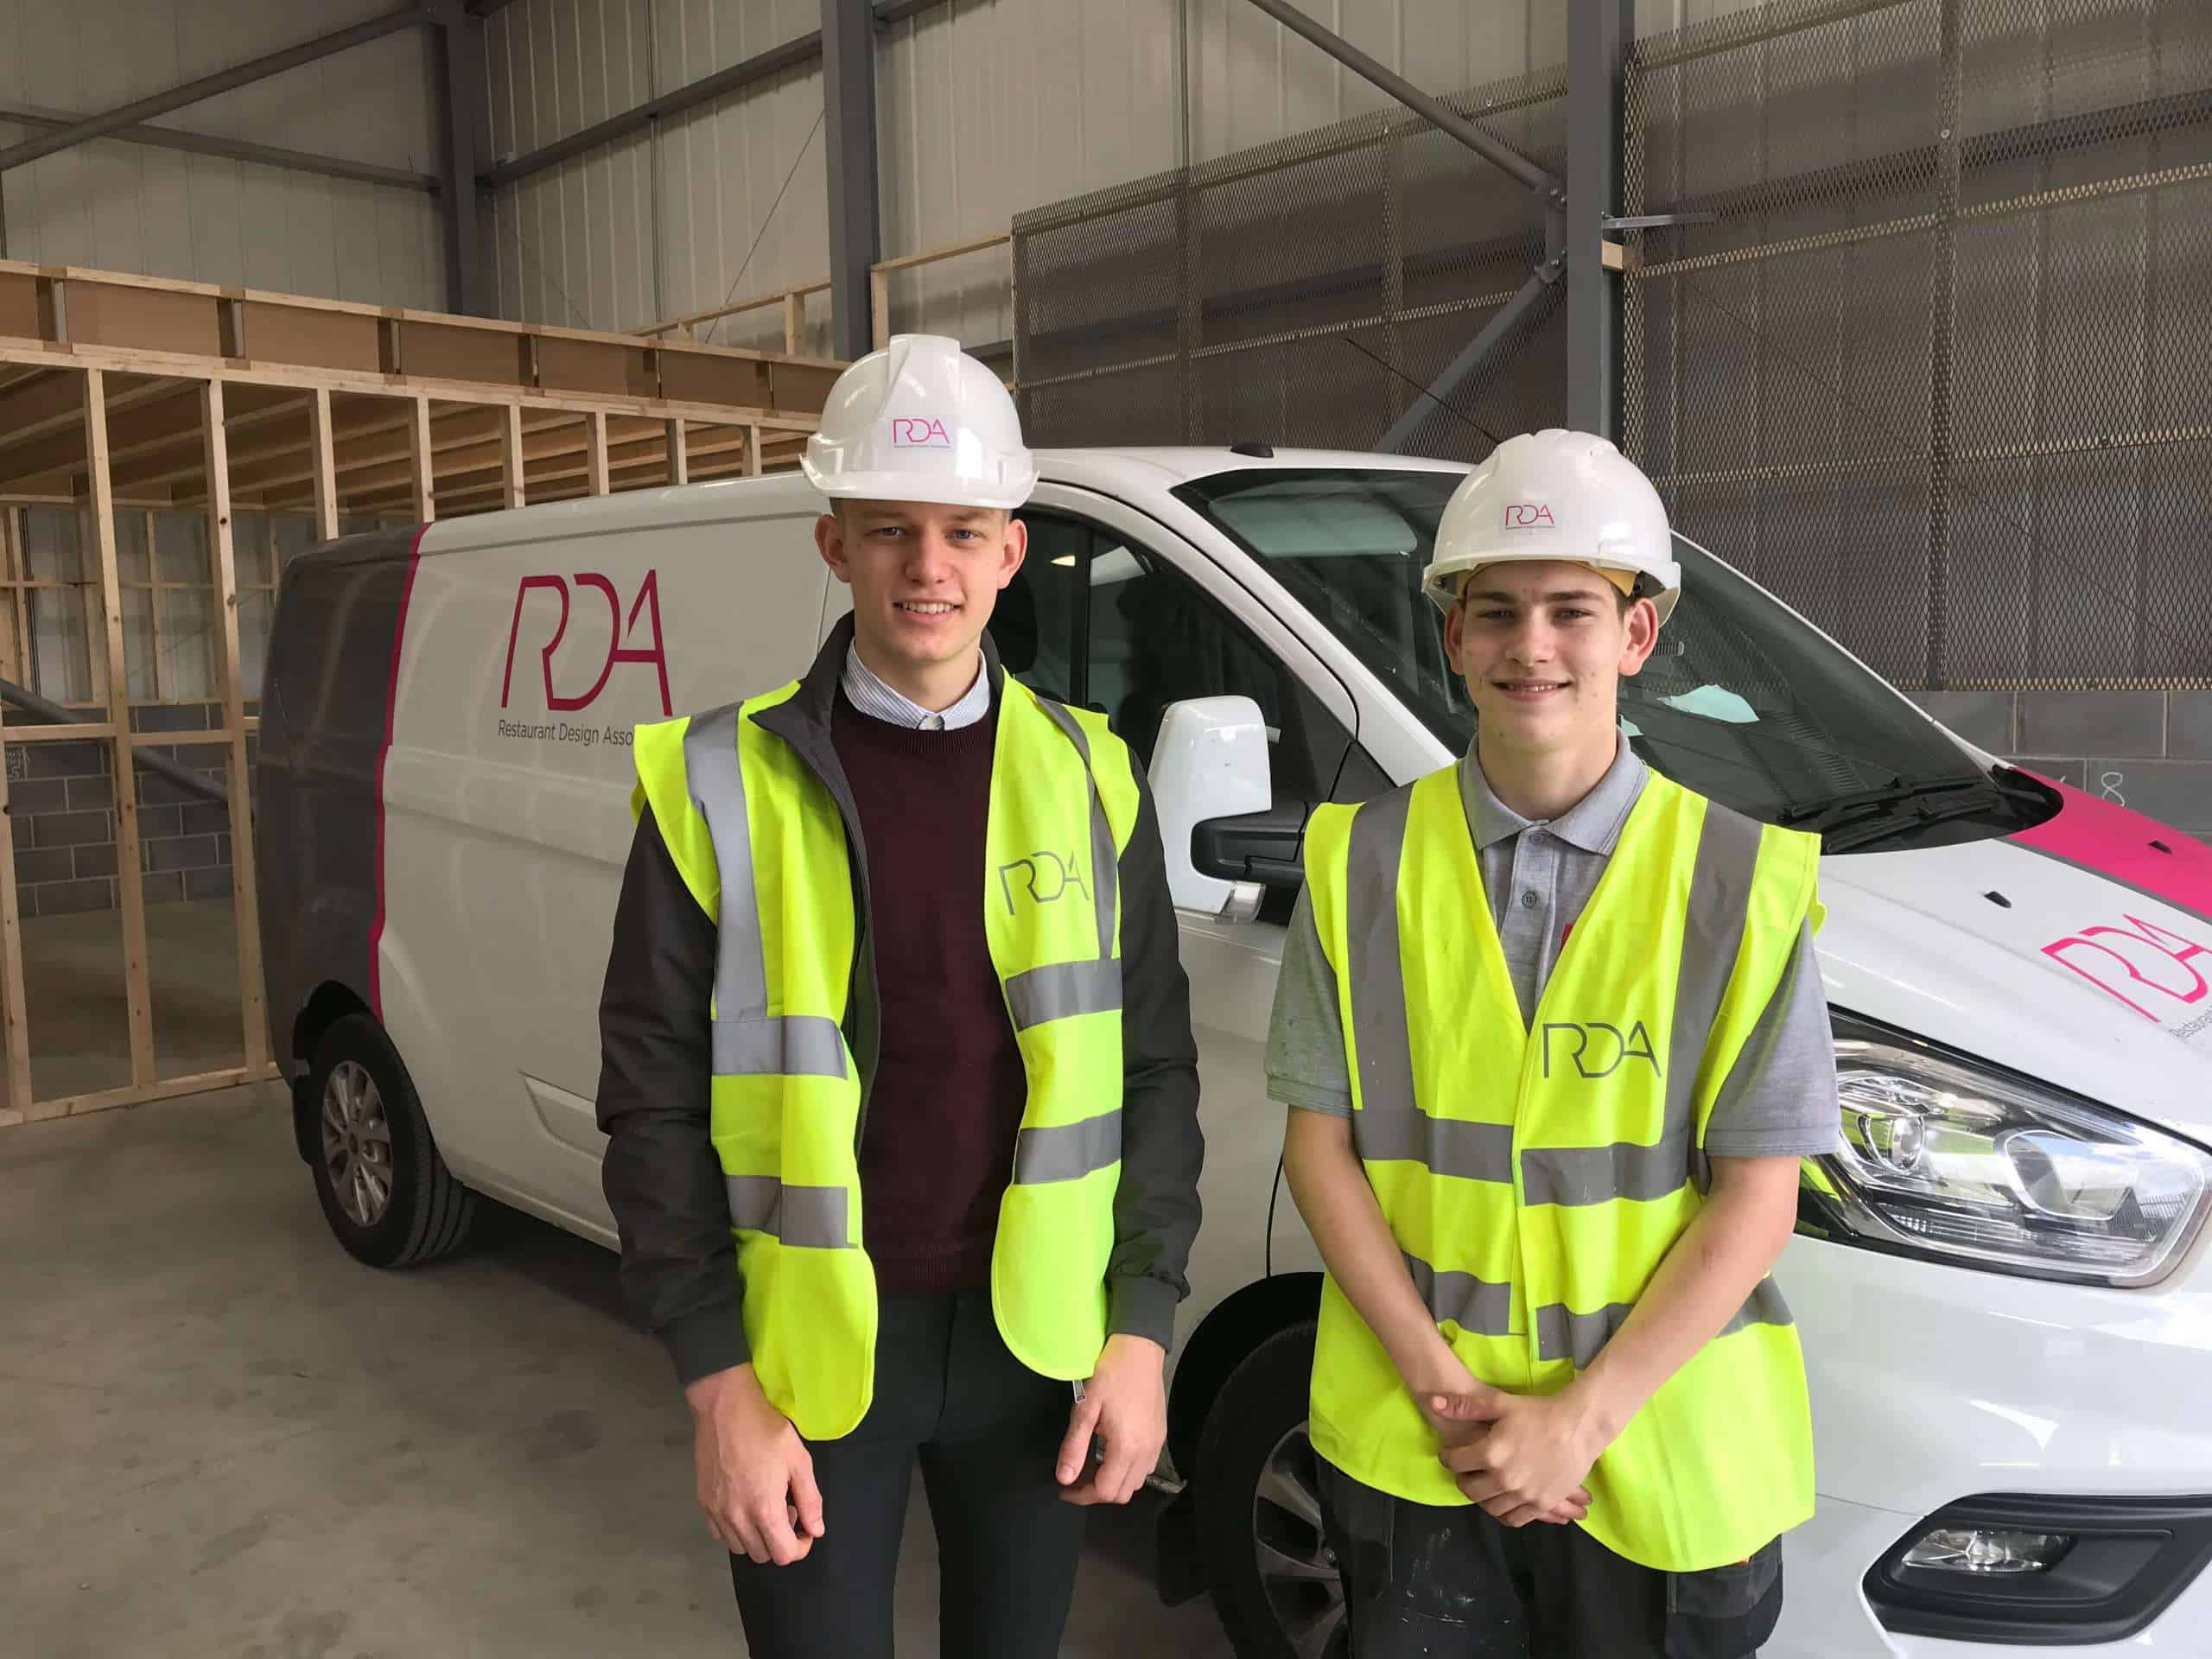 RDA appoints apprentices as part of business growth